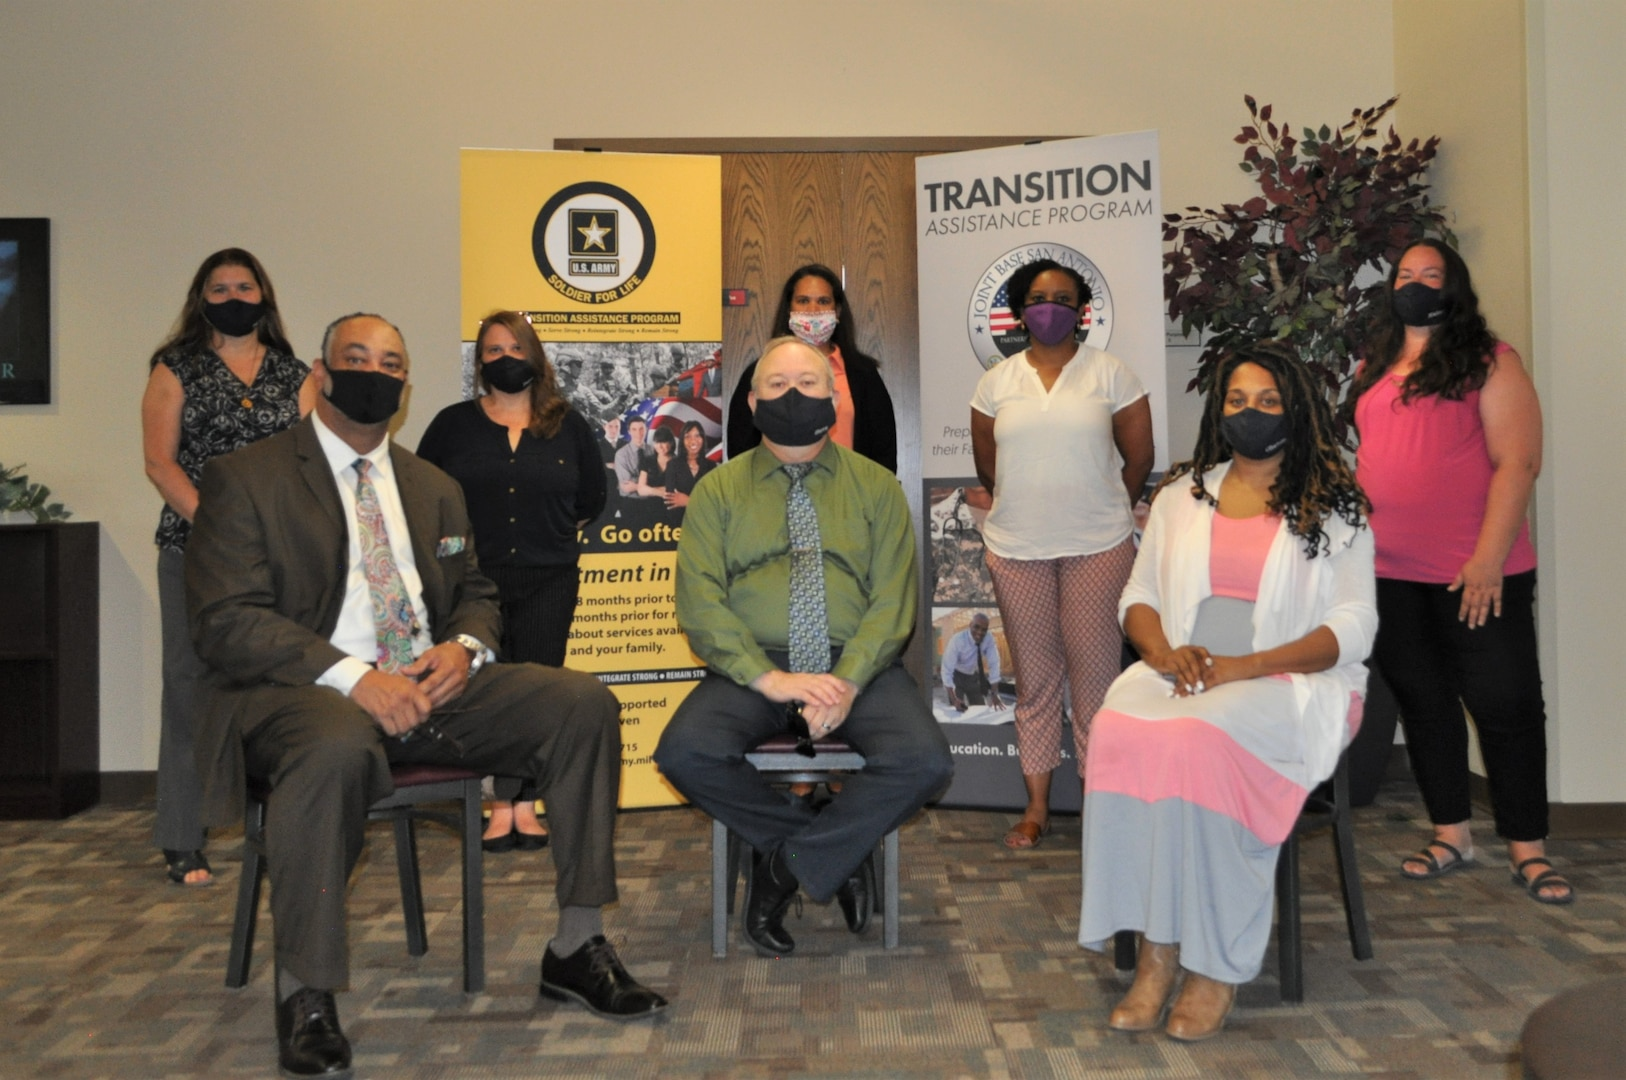 In an effort to provide all transitioning service members at Joint Base San Antonio with the services they are entitled, ensuring a smooth readjustment to civilian life, JBSA's new Joint Transition Readiness Center staff members stand ready to provide information and resources virtually to all who need them.